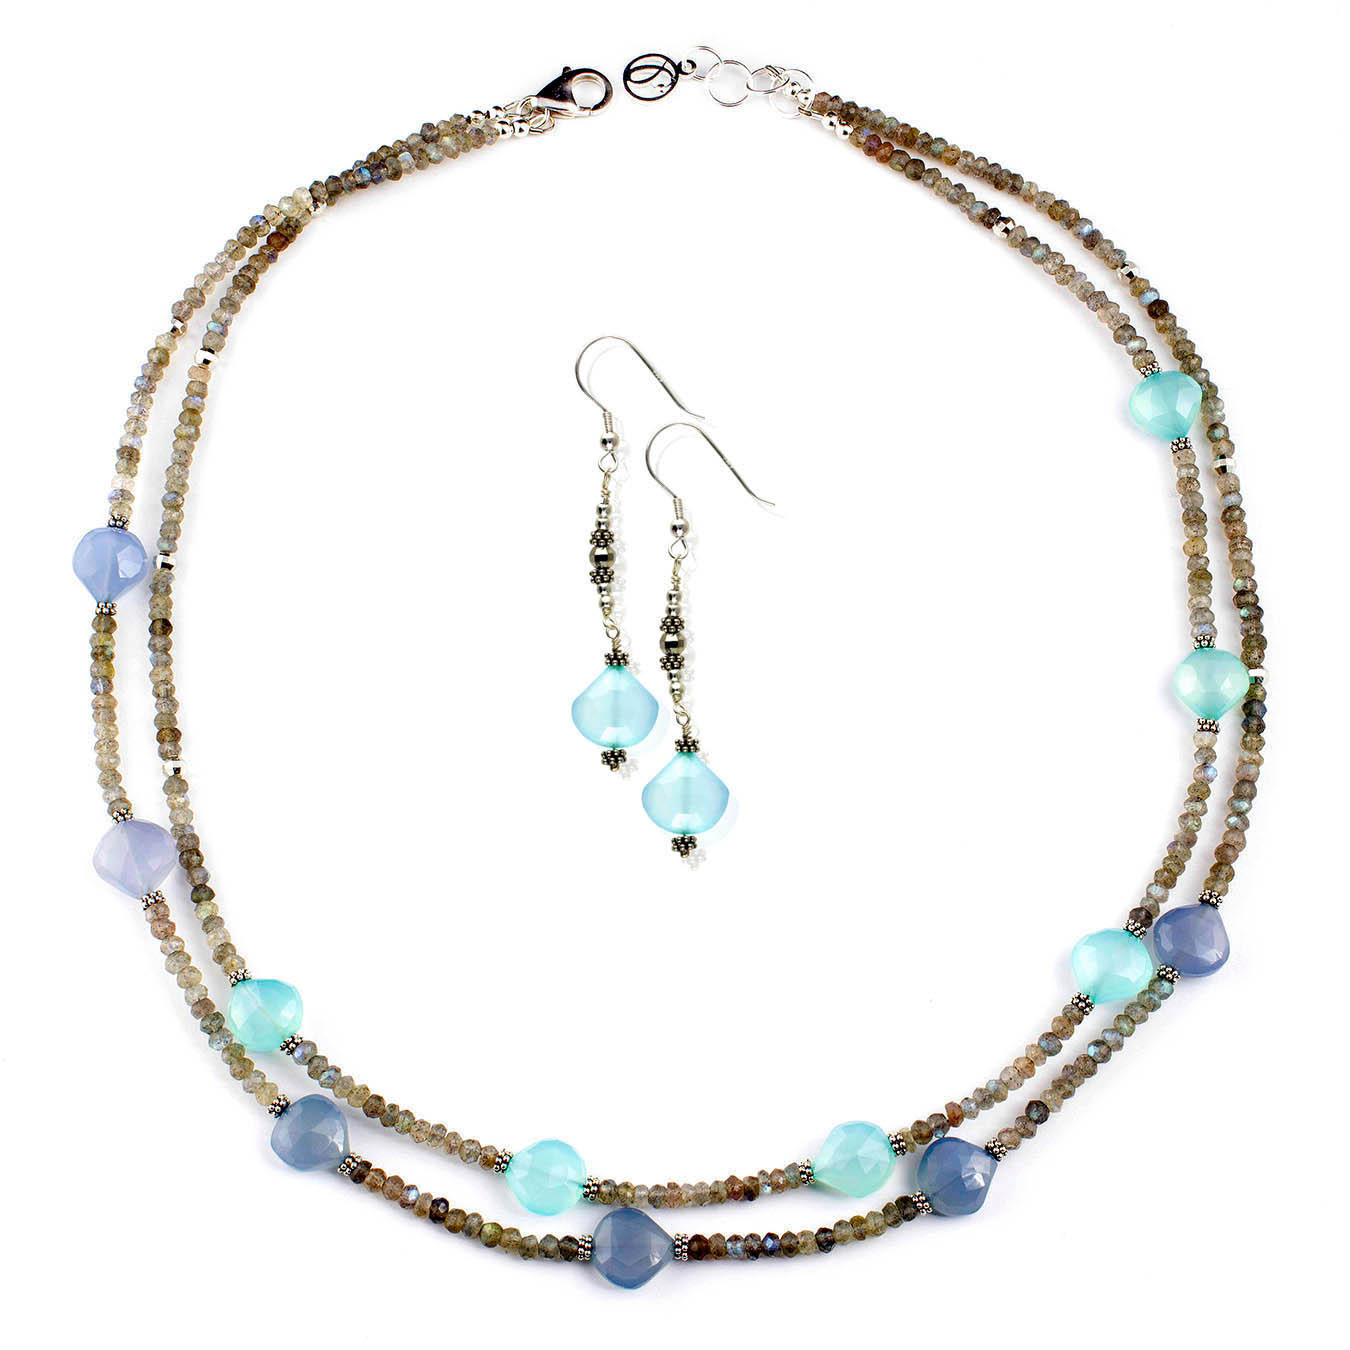 Labradorite and chalcedony semi-precious stones handmade necklace